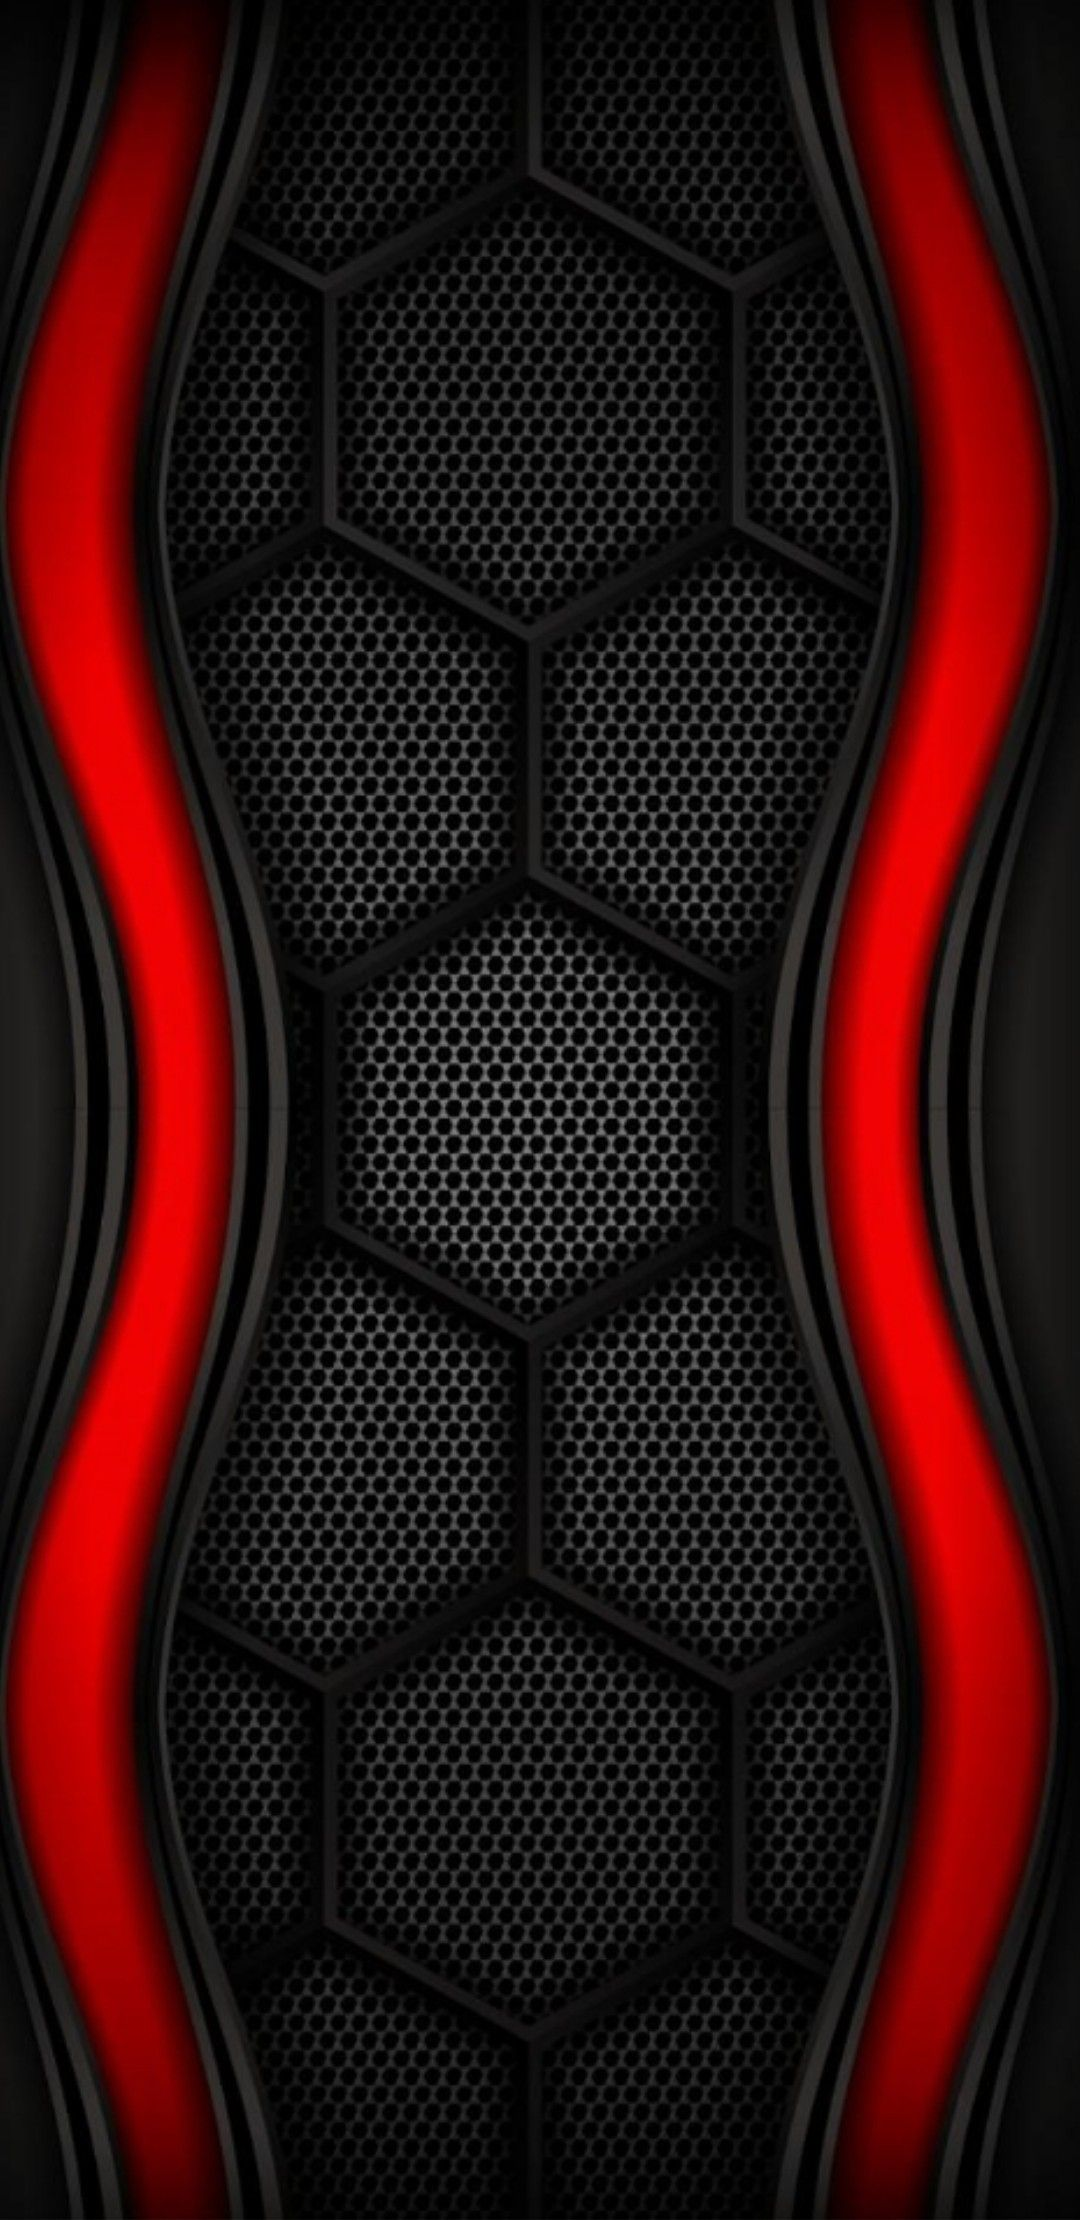 Shoe Tread Speaker Cover Red And Black Wallpaper Android Wallpaper Cellphone Wallpaper